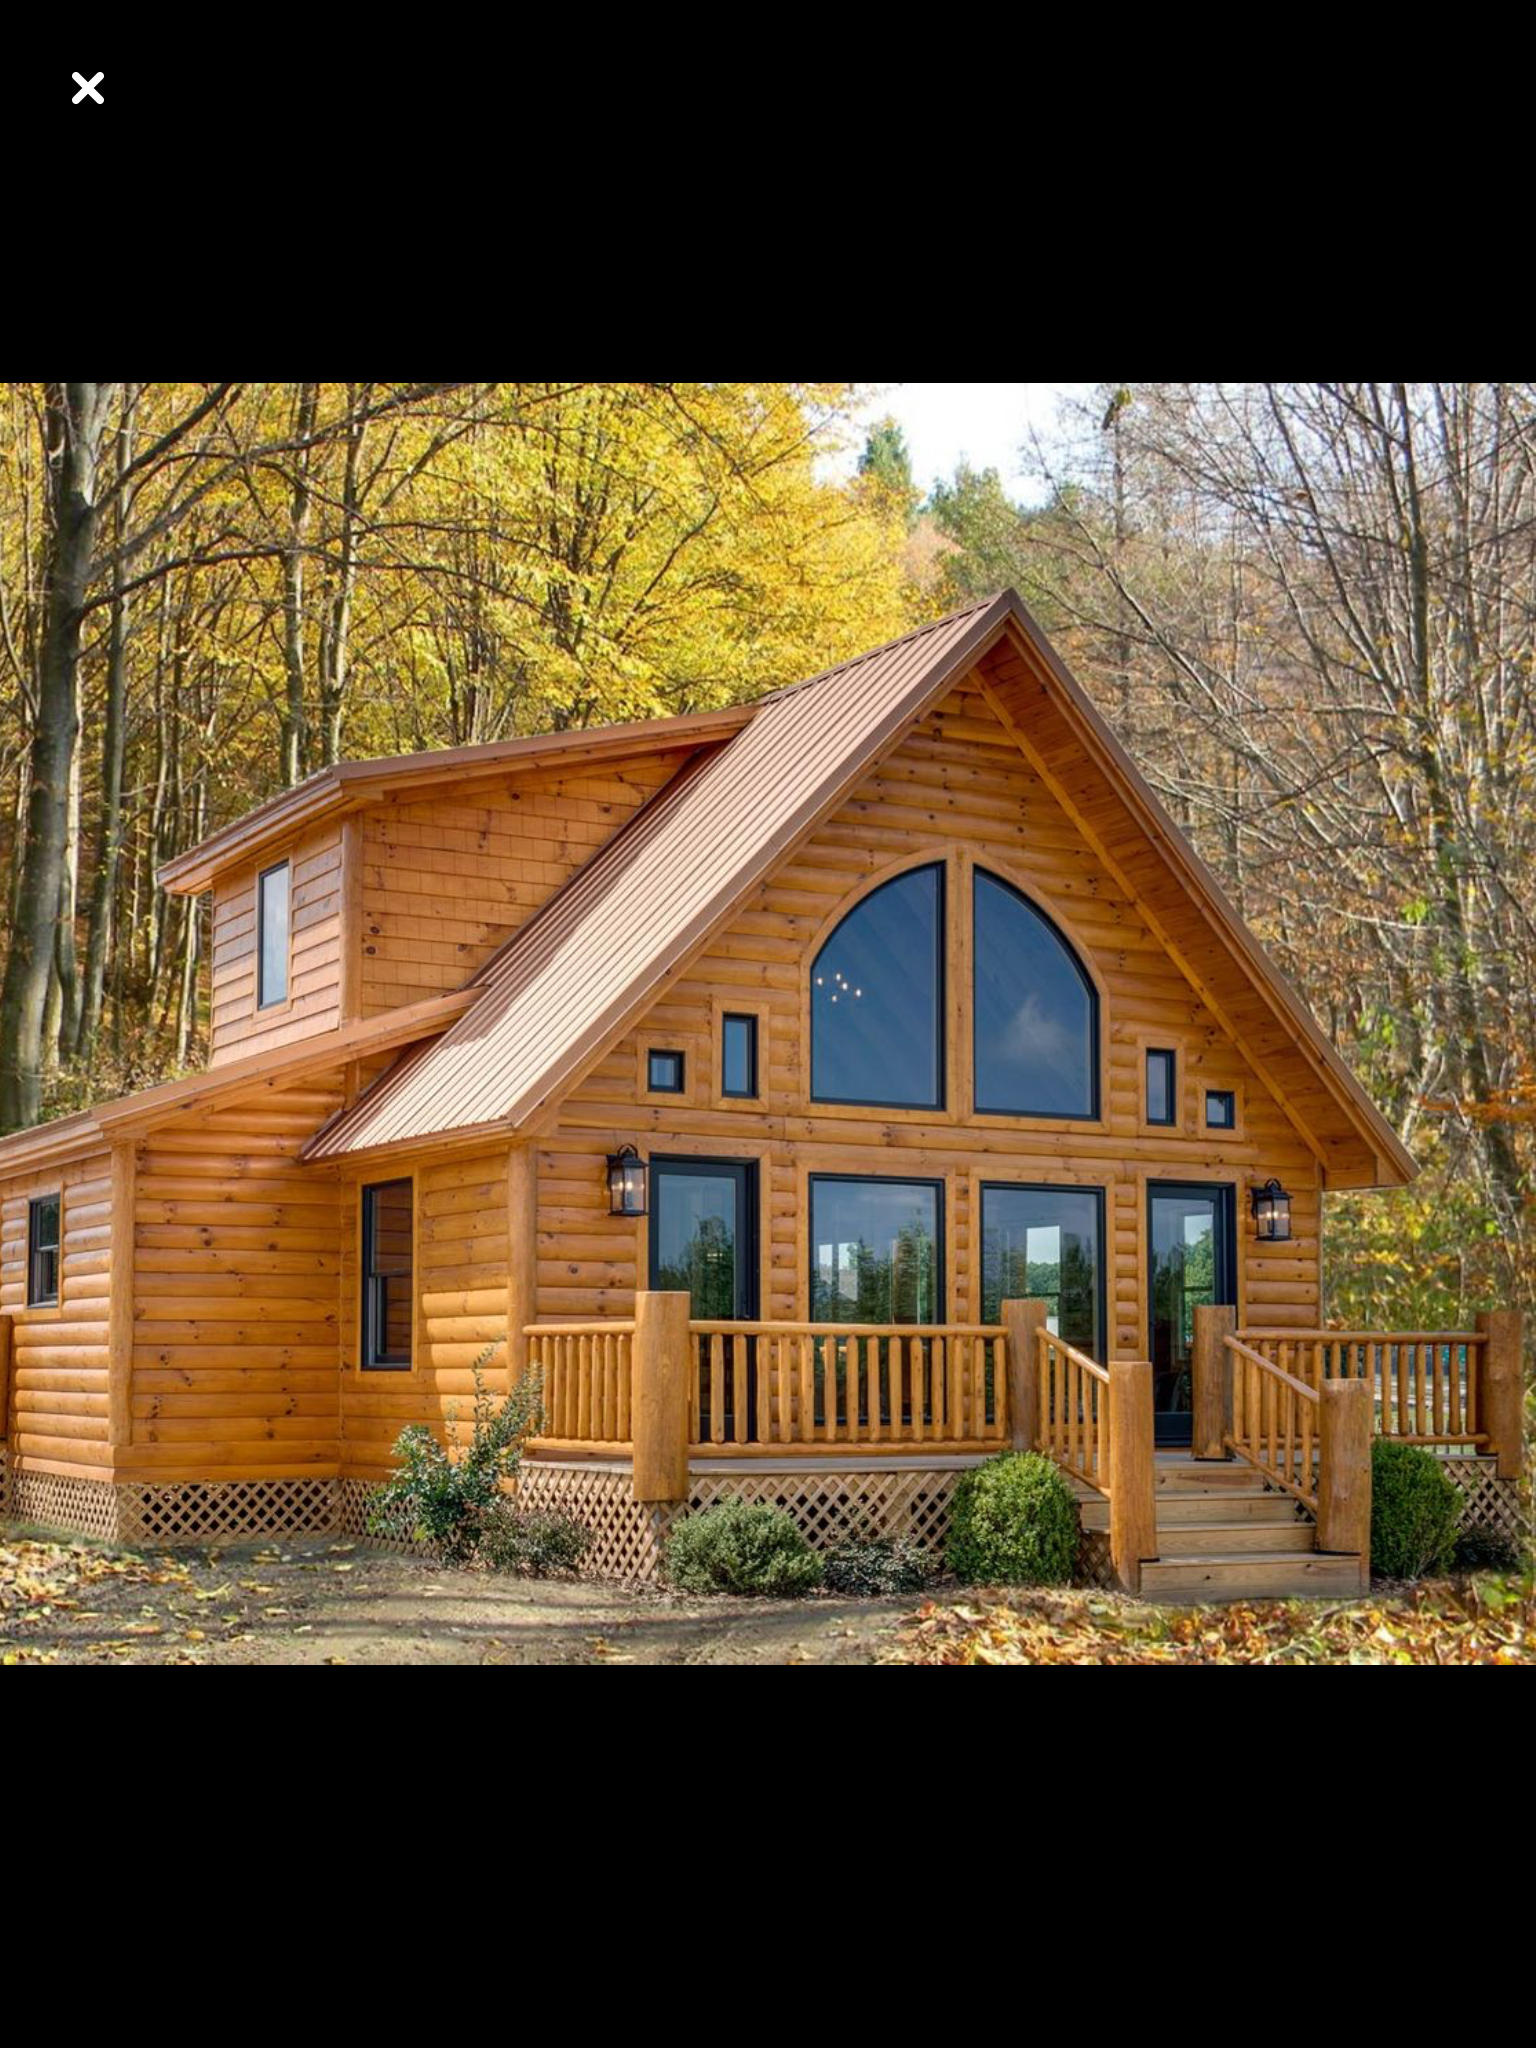 Pin By Janis Mroz On Windows Log Homes Cabins In The Woods Log Cabin Homes